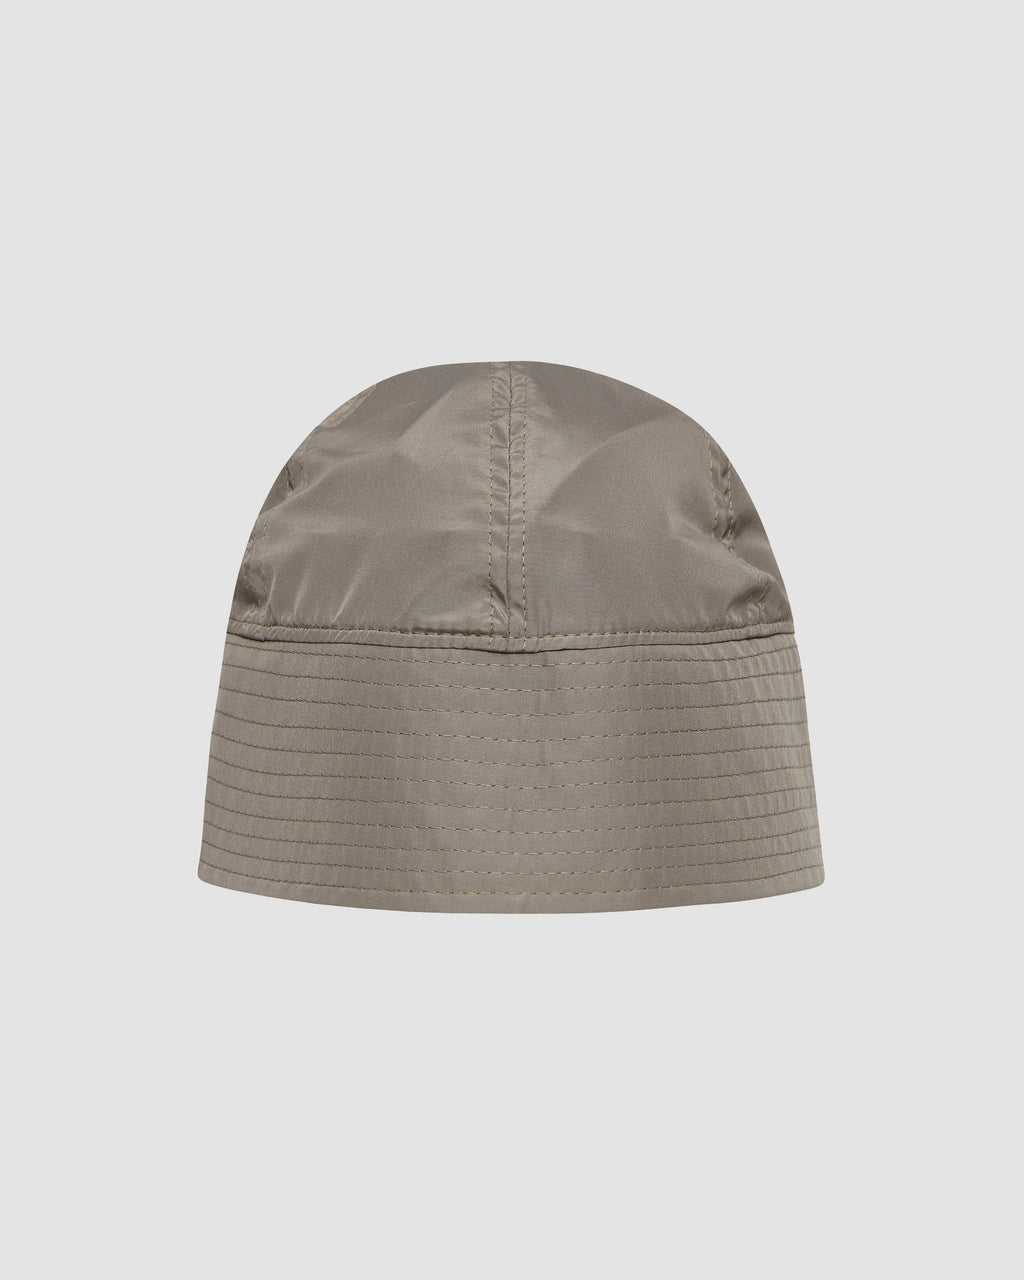 1017 ALYX 9SM | BUCKET HAT X BROWNS | Hat | Accessories, Browns, Hat, Man, S20, Woman